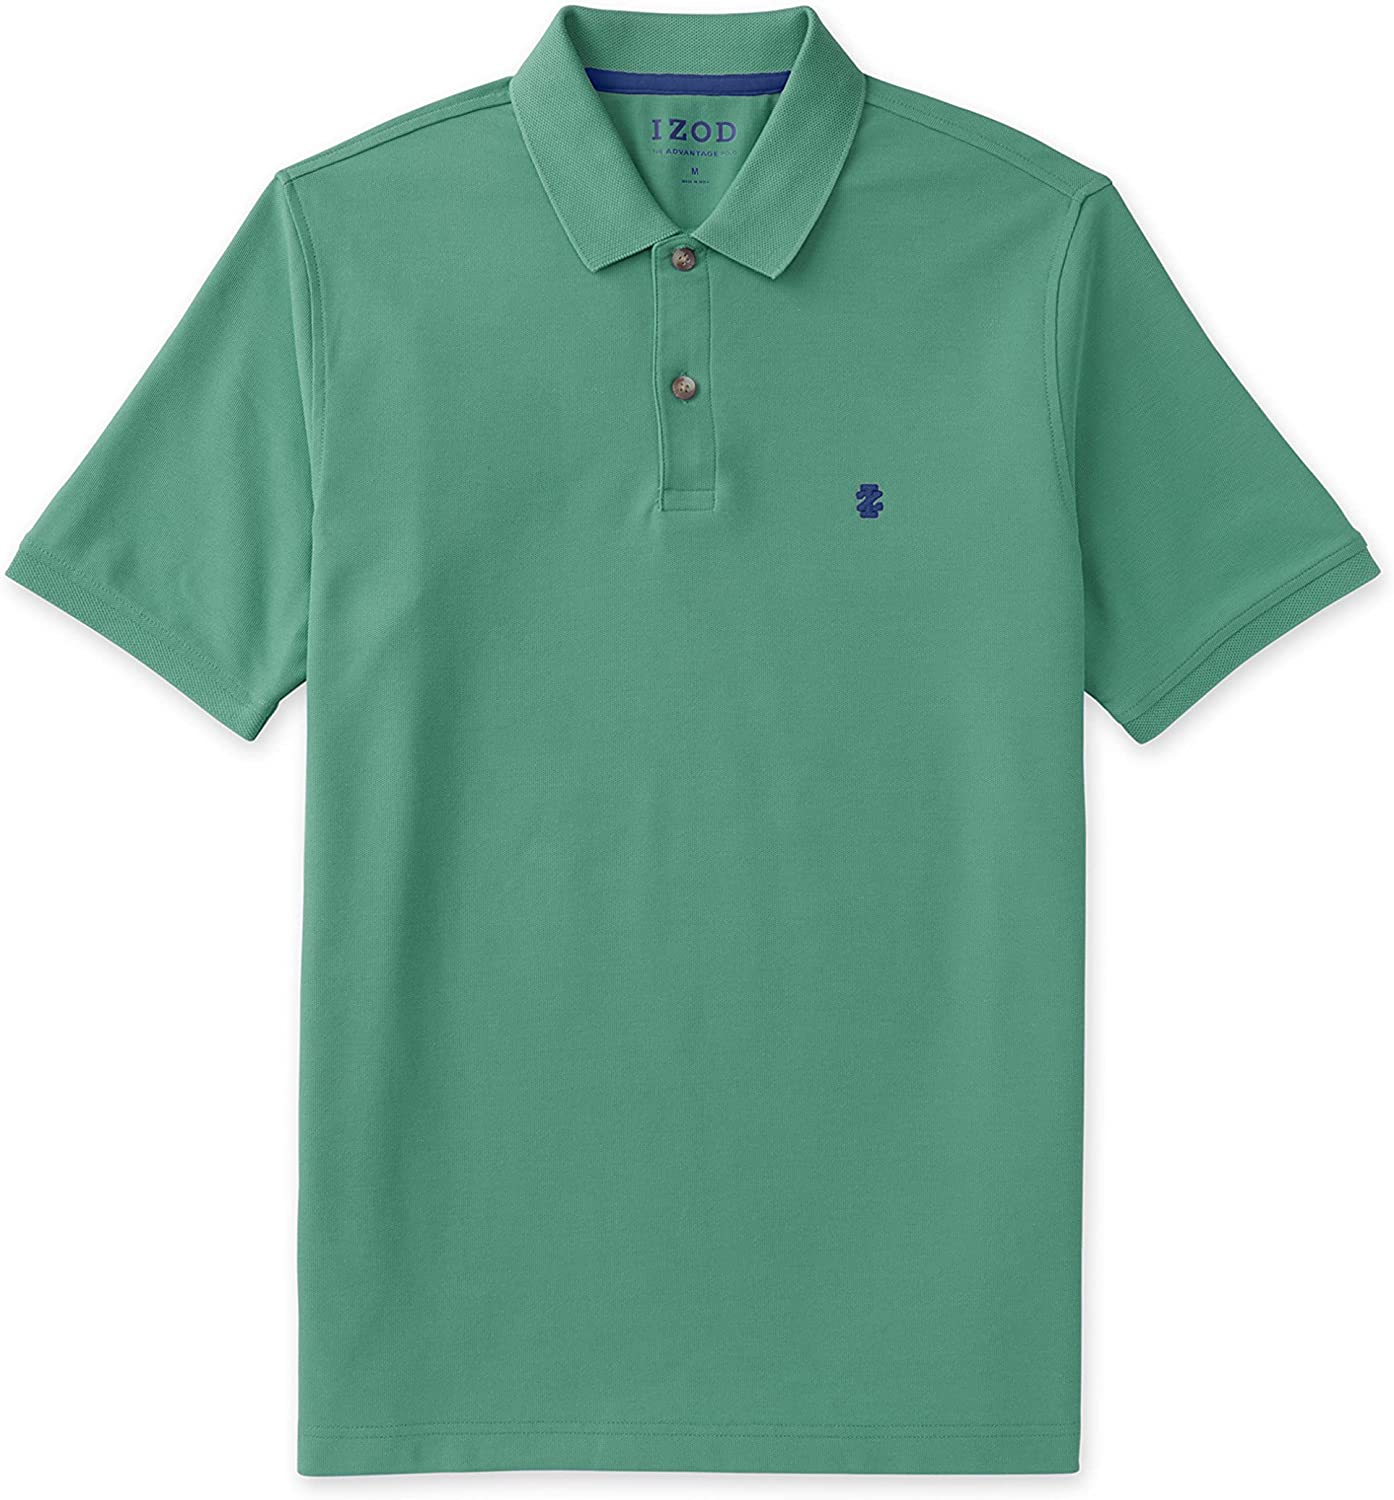 IZOD Men's Big and Tall Advantage Performance Stretch Short Sleeve Solid Polo Shirt